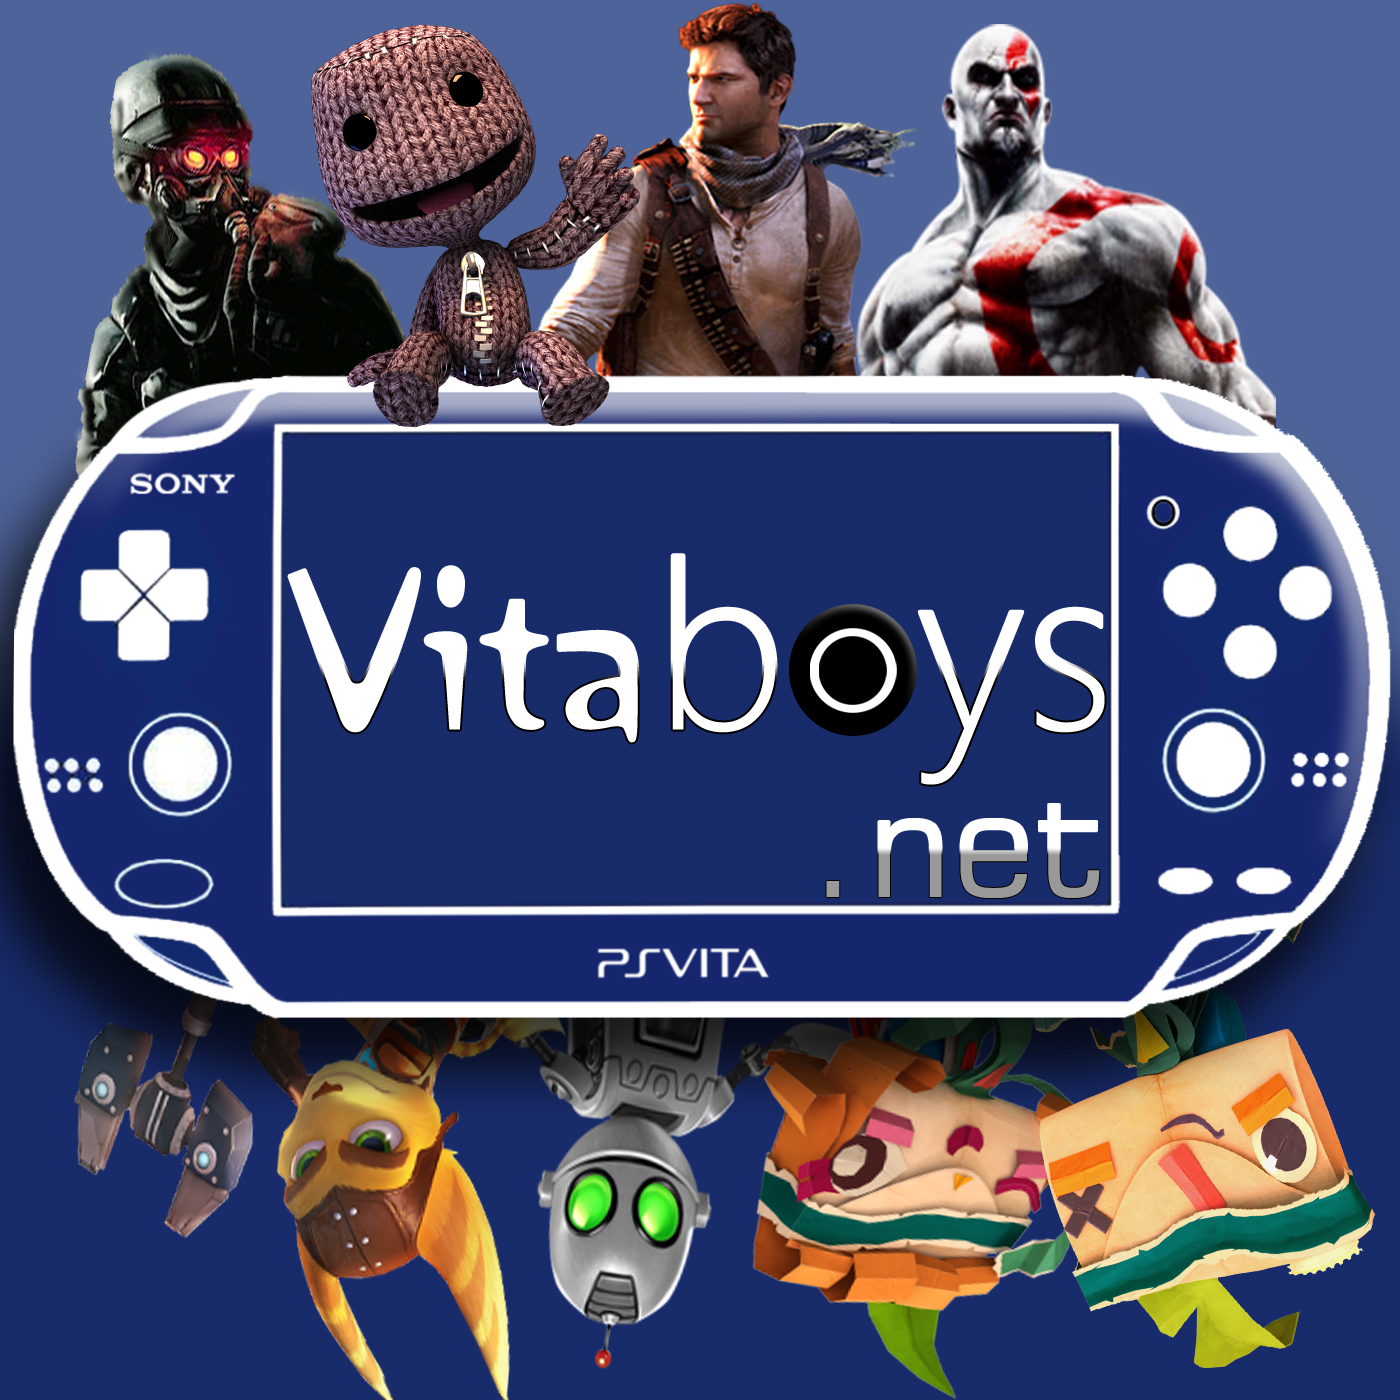 VitaBoys: PS Vita, 3DS, and IOS Gaming Show